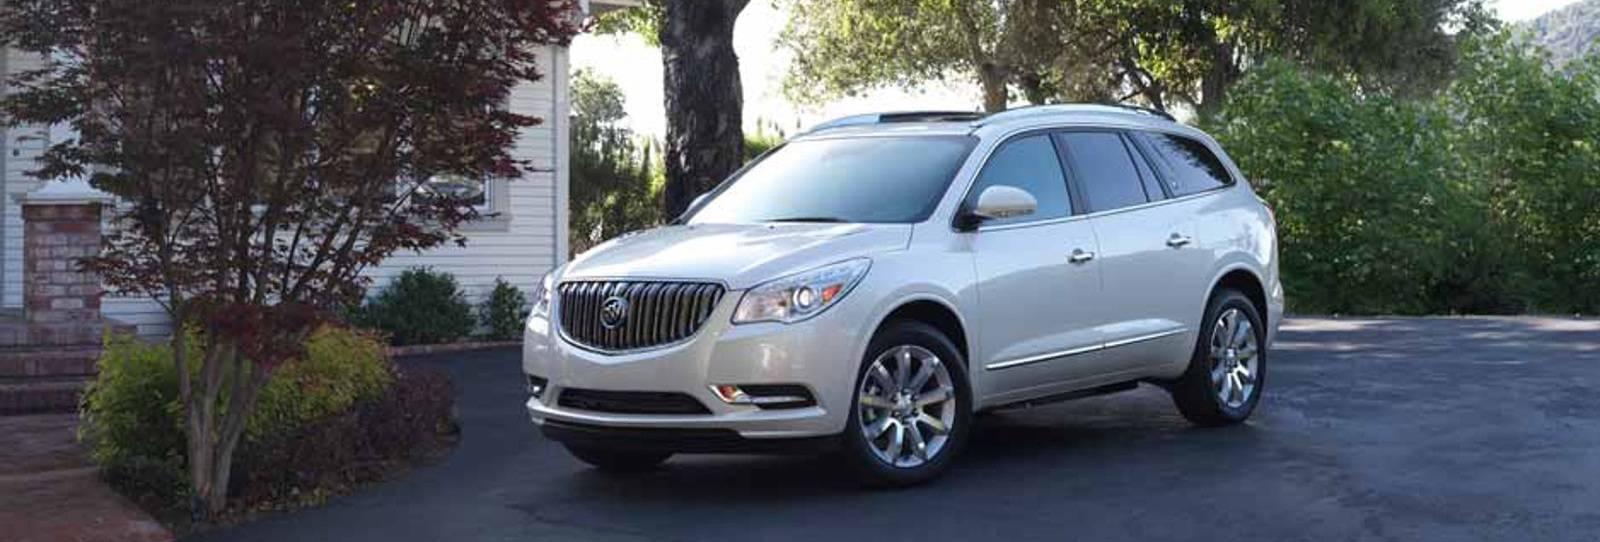 2017 Buick Enclave in Silver